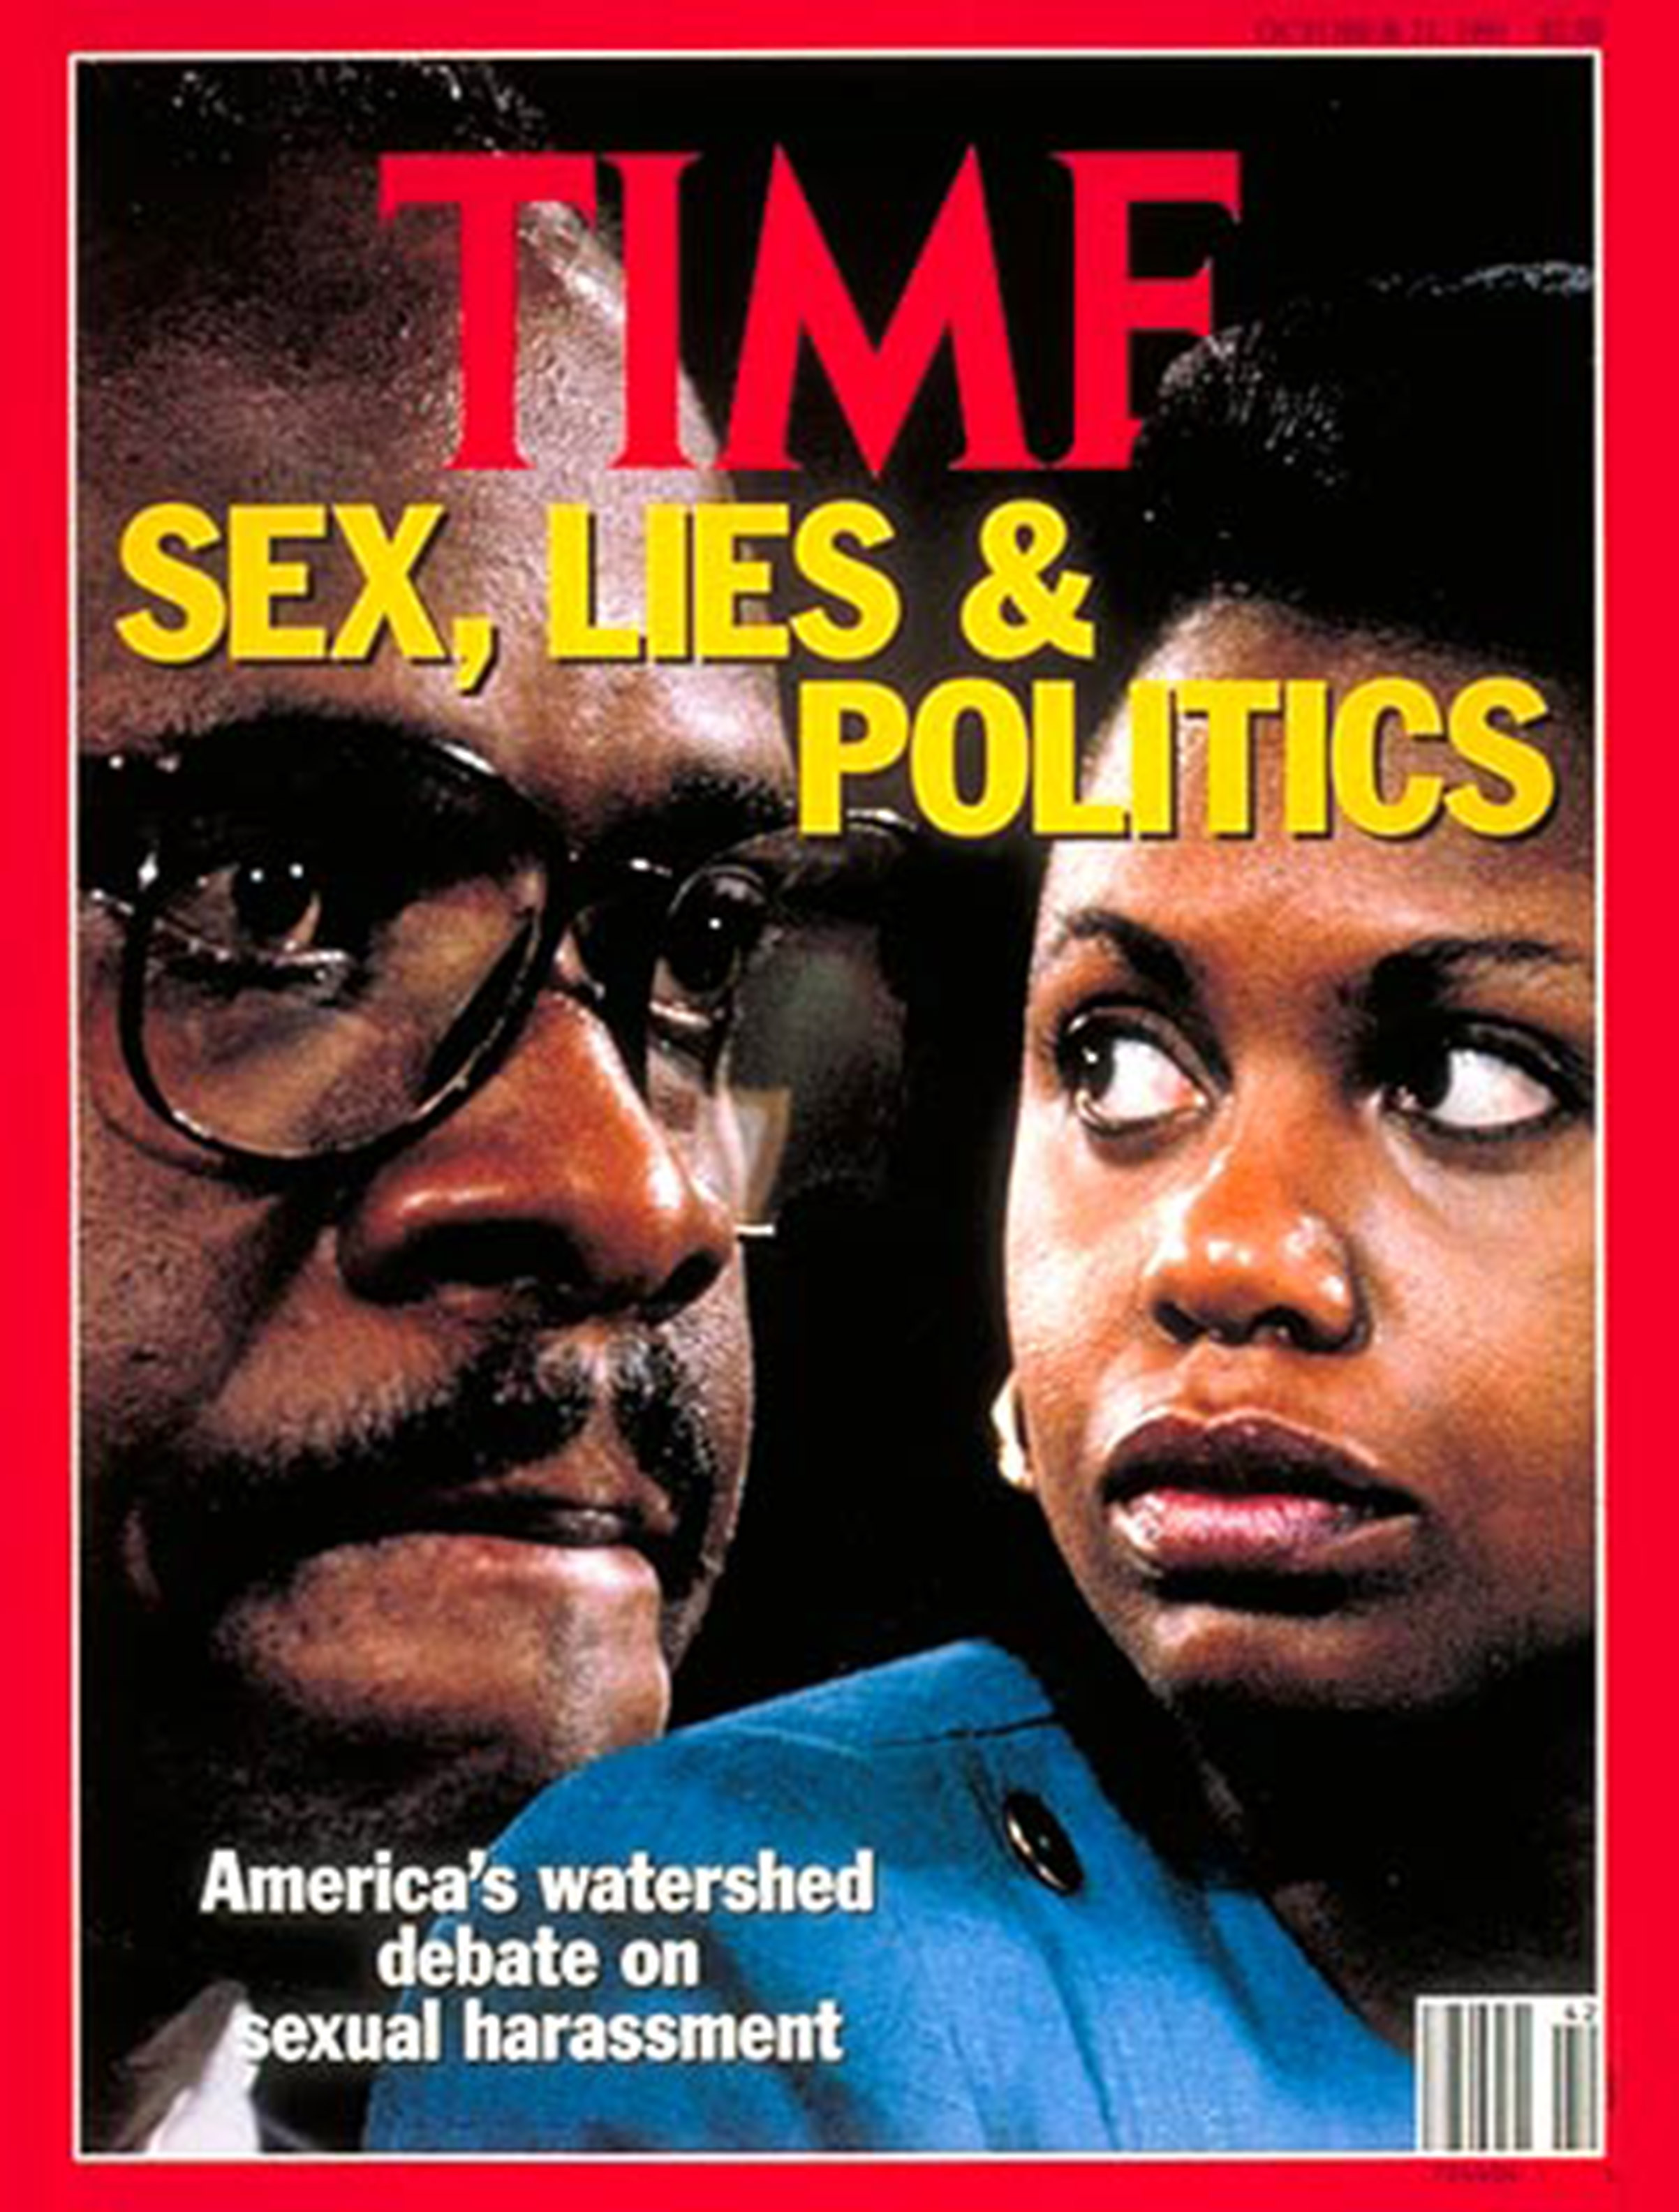 Supreme Court nominee Clarence Thomas and law professor Anita Hill on the Oct. 21, 1991, cover of TIME.